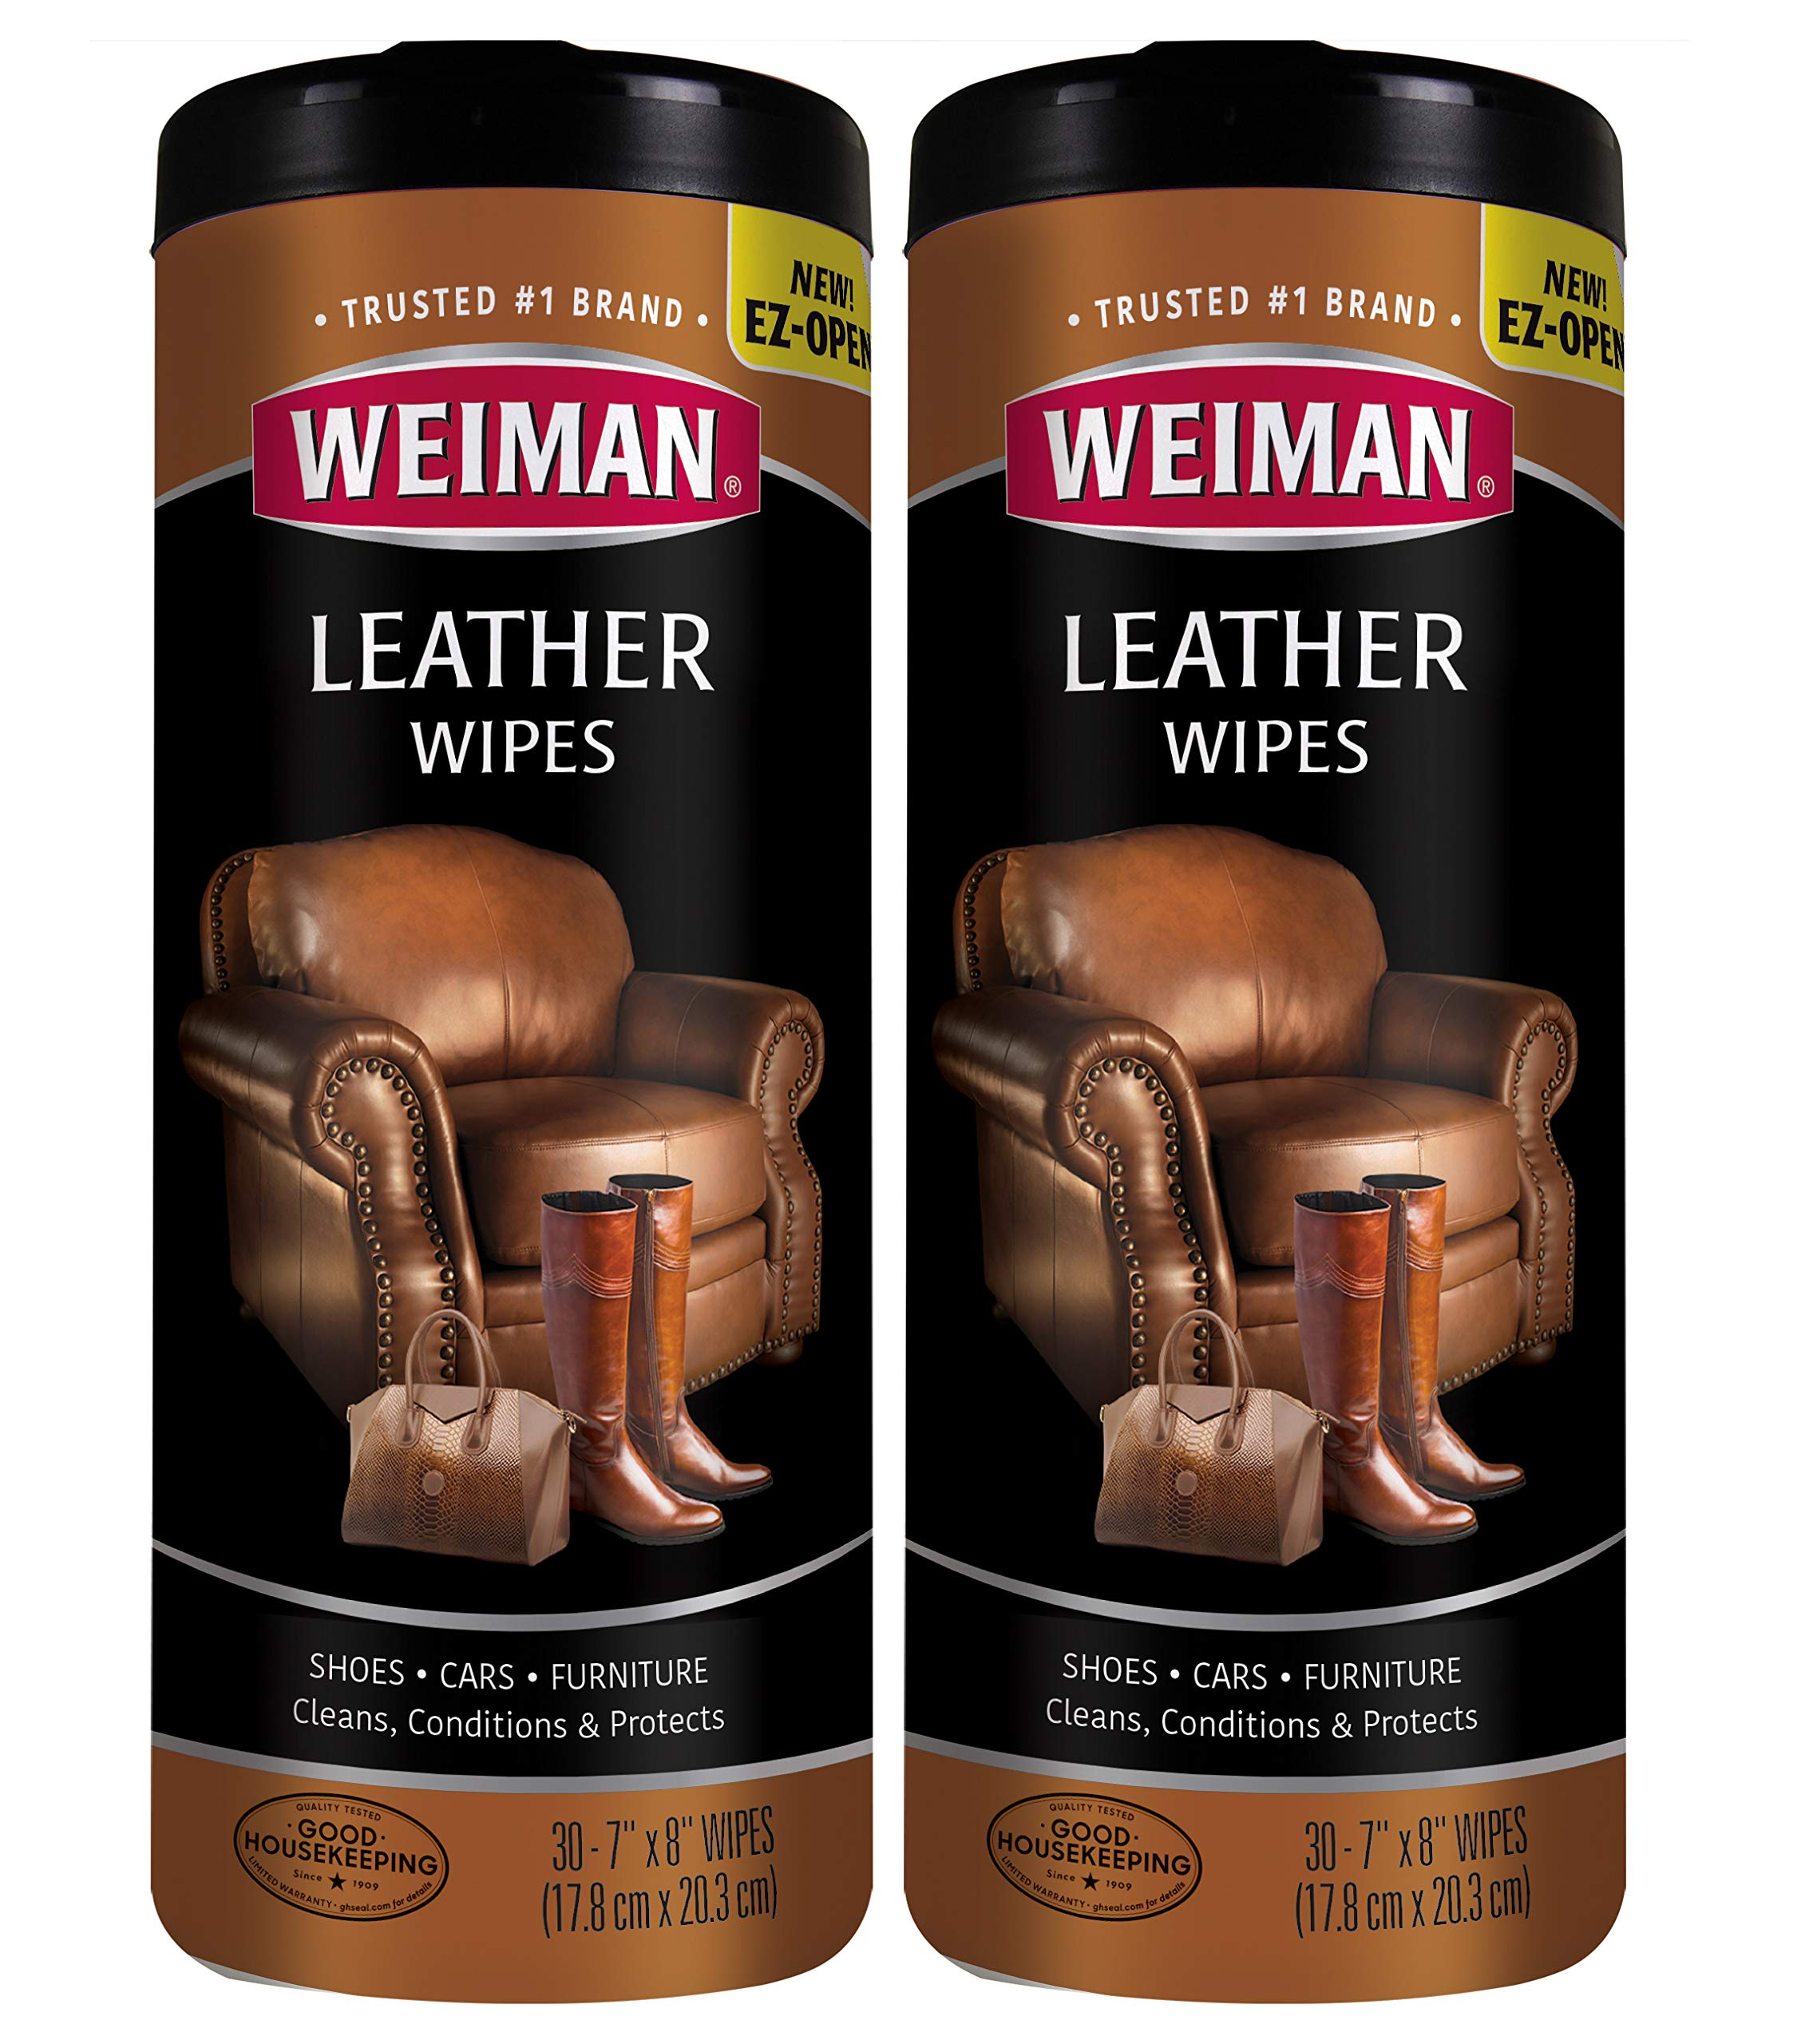 Weiman Leather Wipes for Furniture - 2 Pack - Non Toxic Formula Cleans and Conditions Car Seats, Shoes, Couches and More - 30 Wipes by Weiman